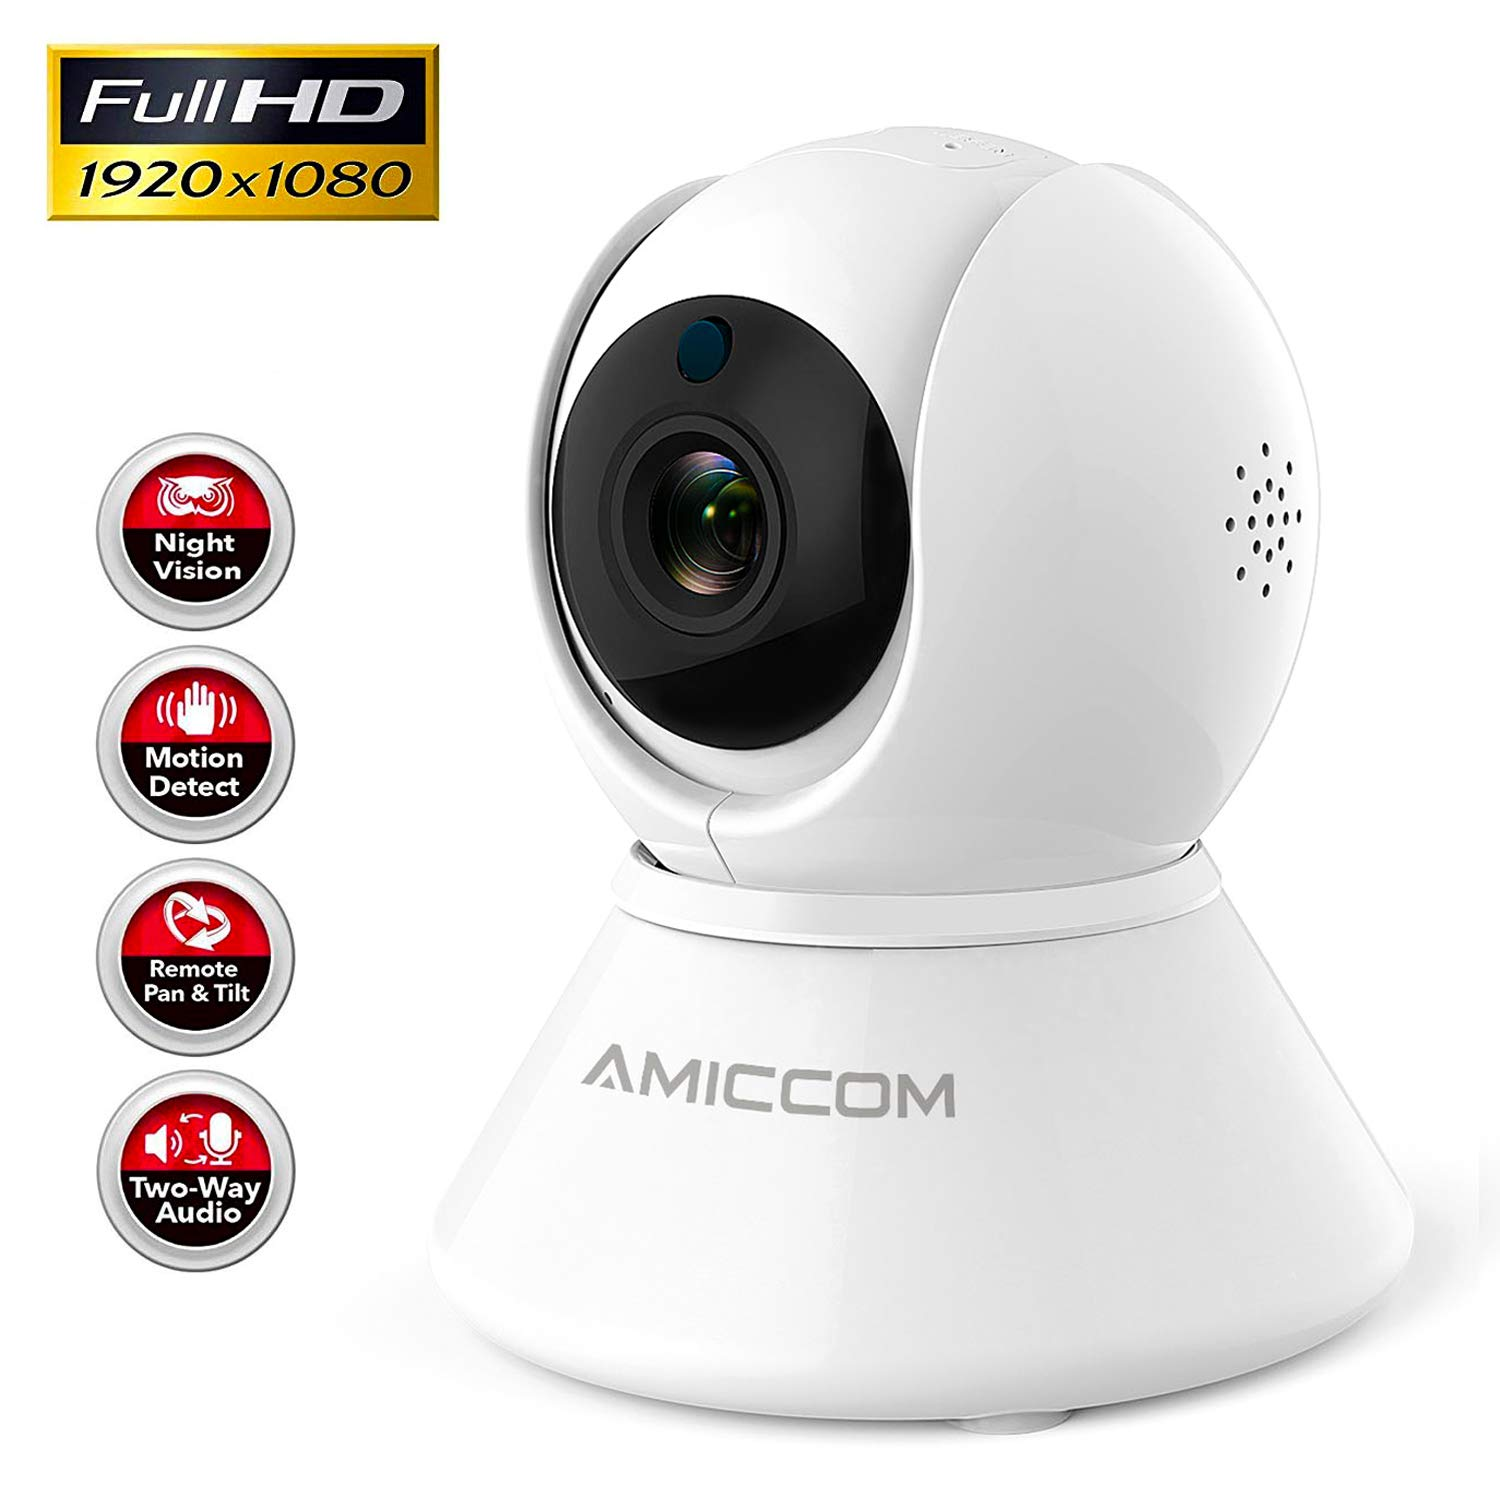 WiFi Camera-1080P Security Camera System Wireless Camera Indoor 2.4Ghz Home Camera with 2 Way Audio Night Vision, Auto-Cruise, Motion Tracker, Activity Alert,Support iOS/Android/Windows by BOOCOSA-US